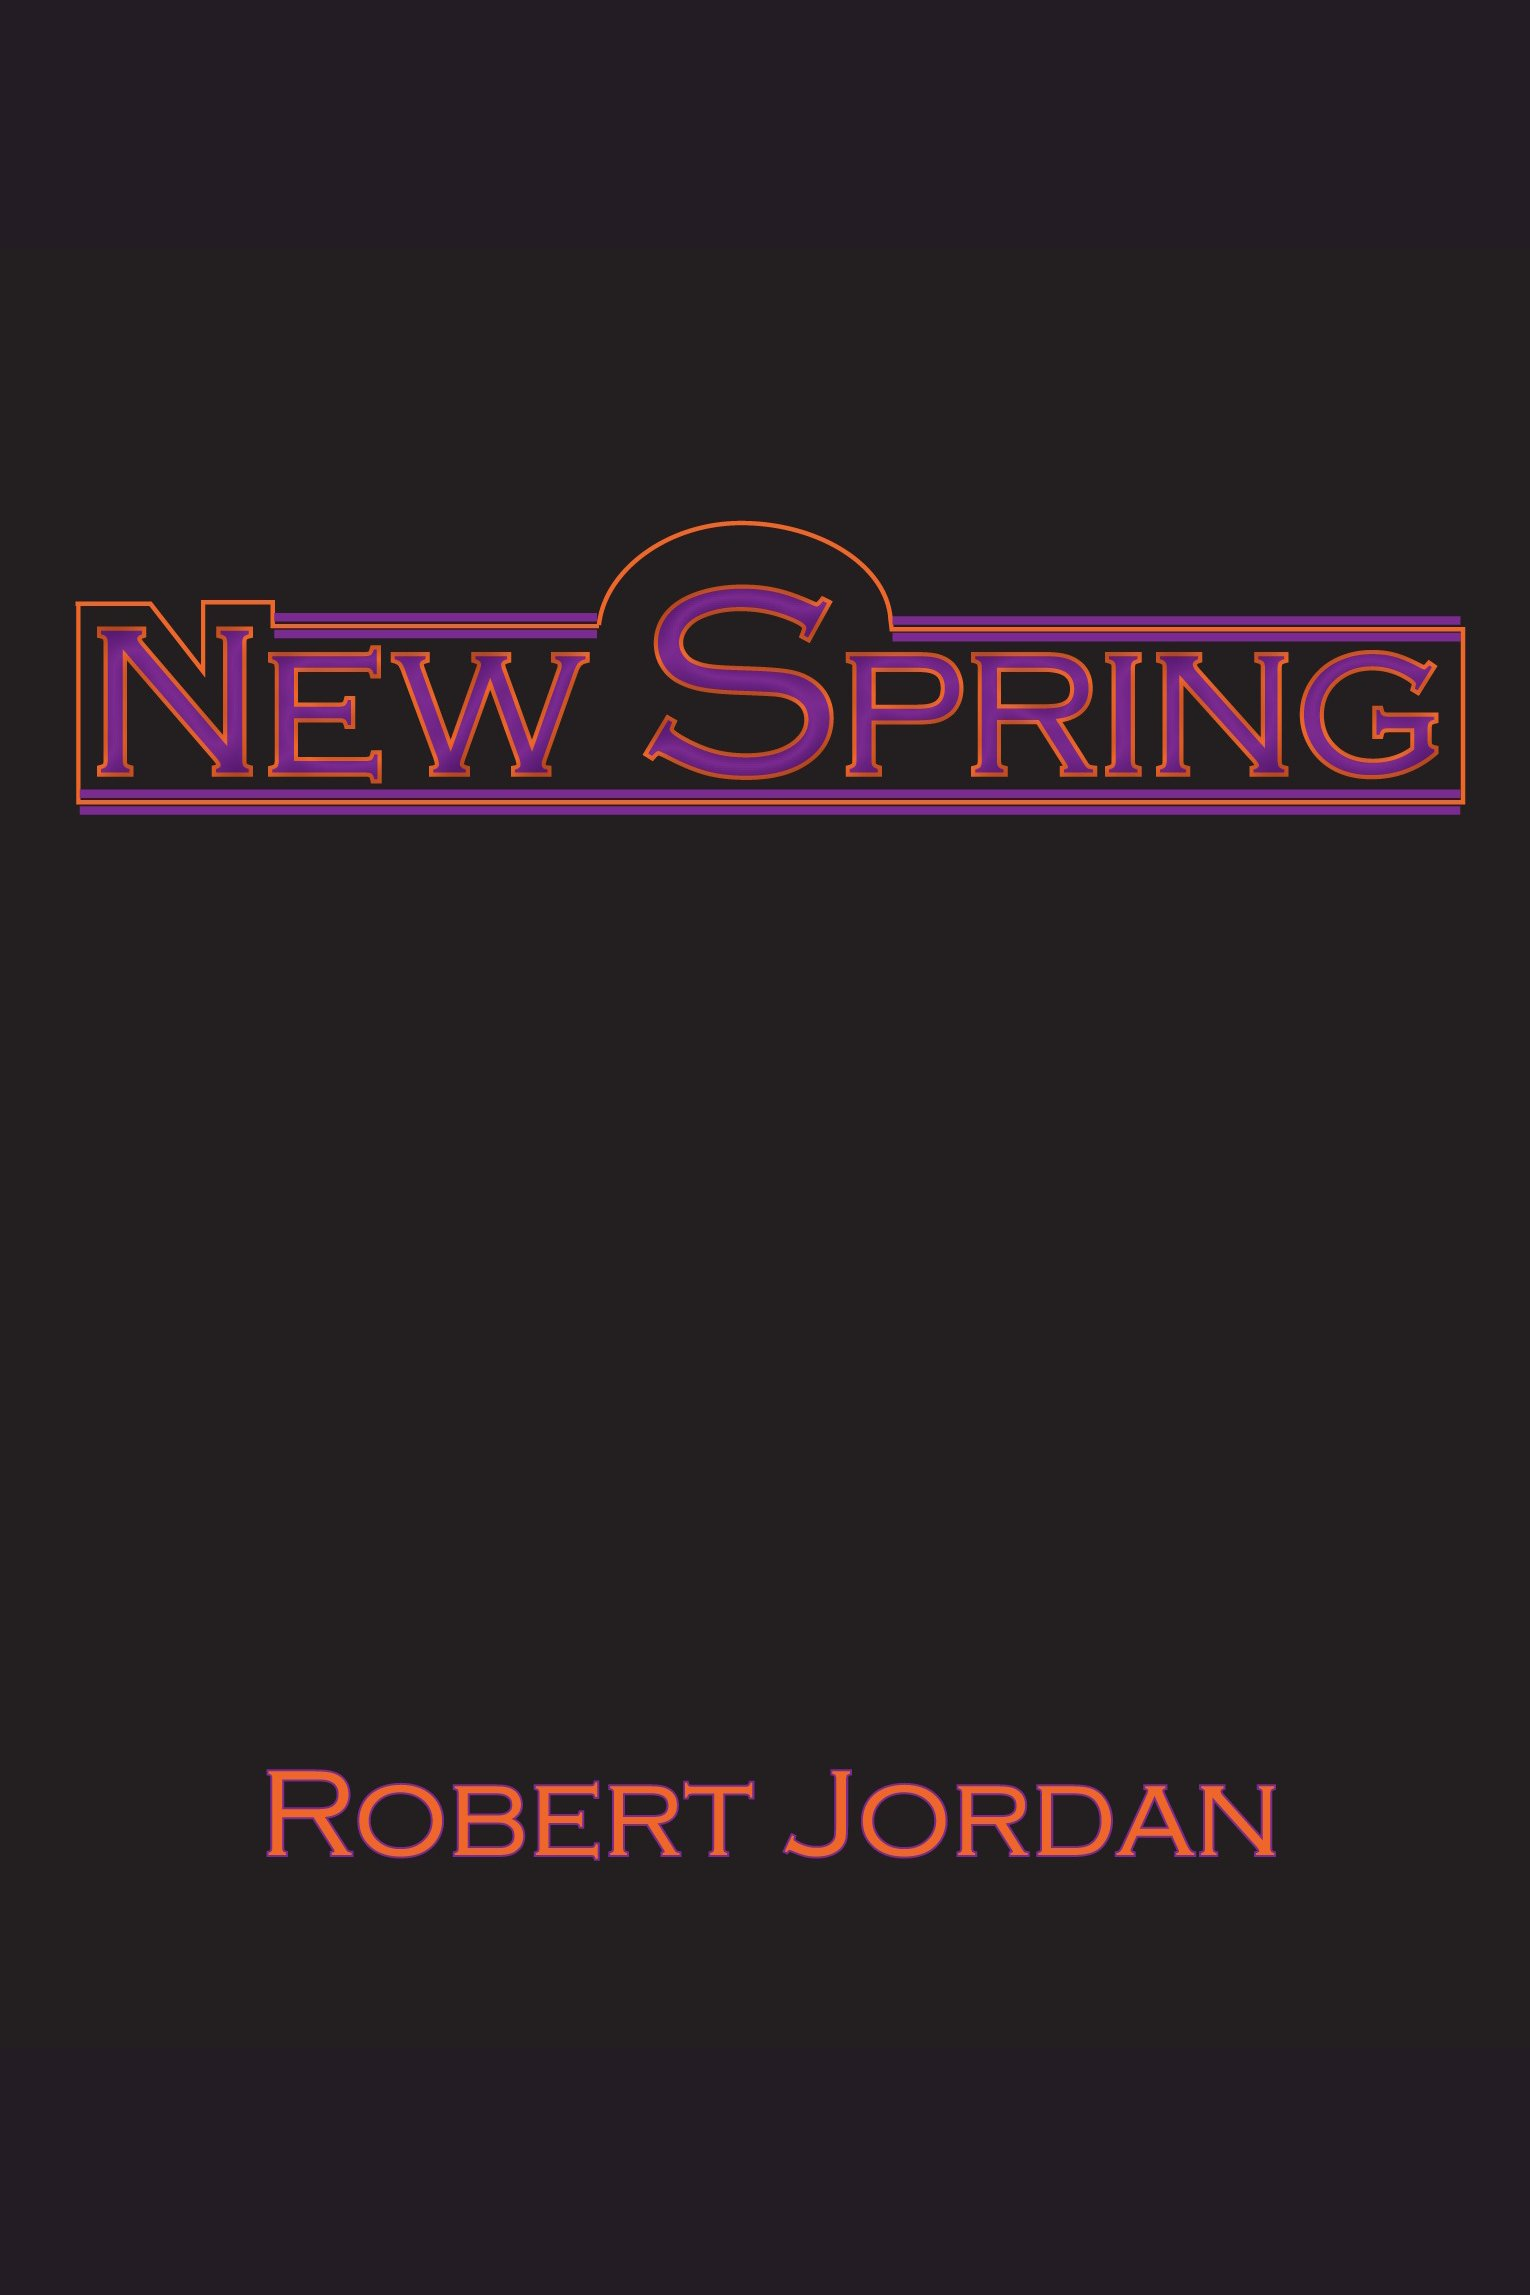 New spring cover image